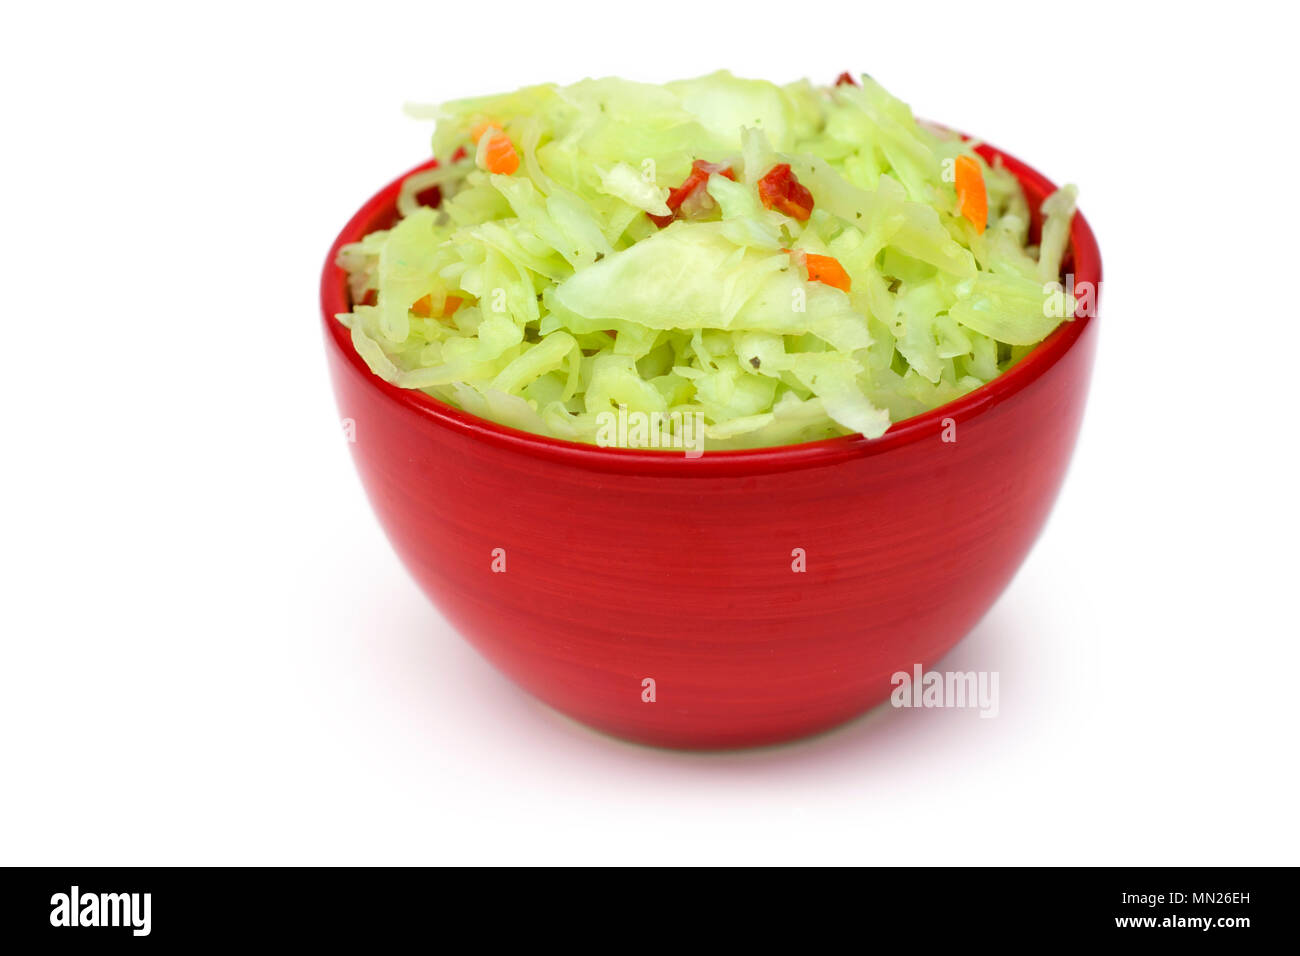 Coleslaw, red bowl with Coleslaw Salad - Stock Image